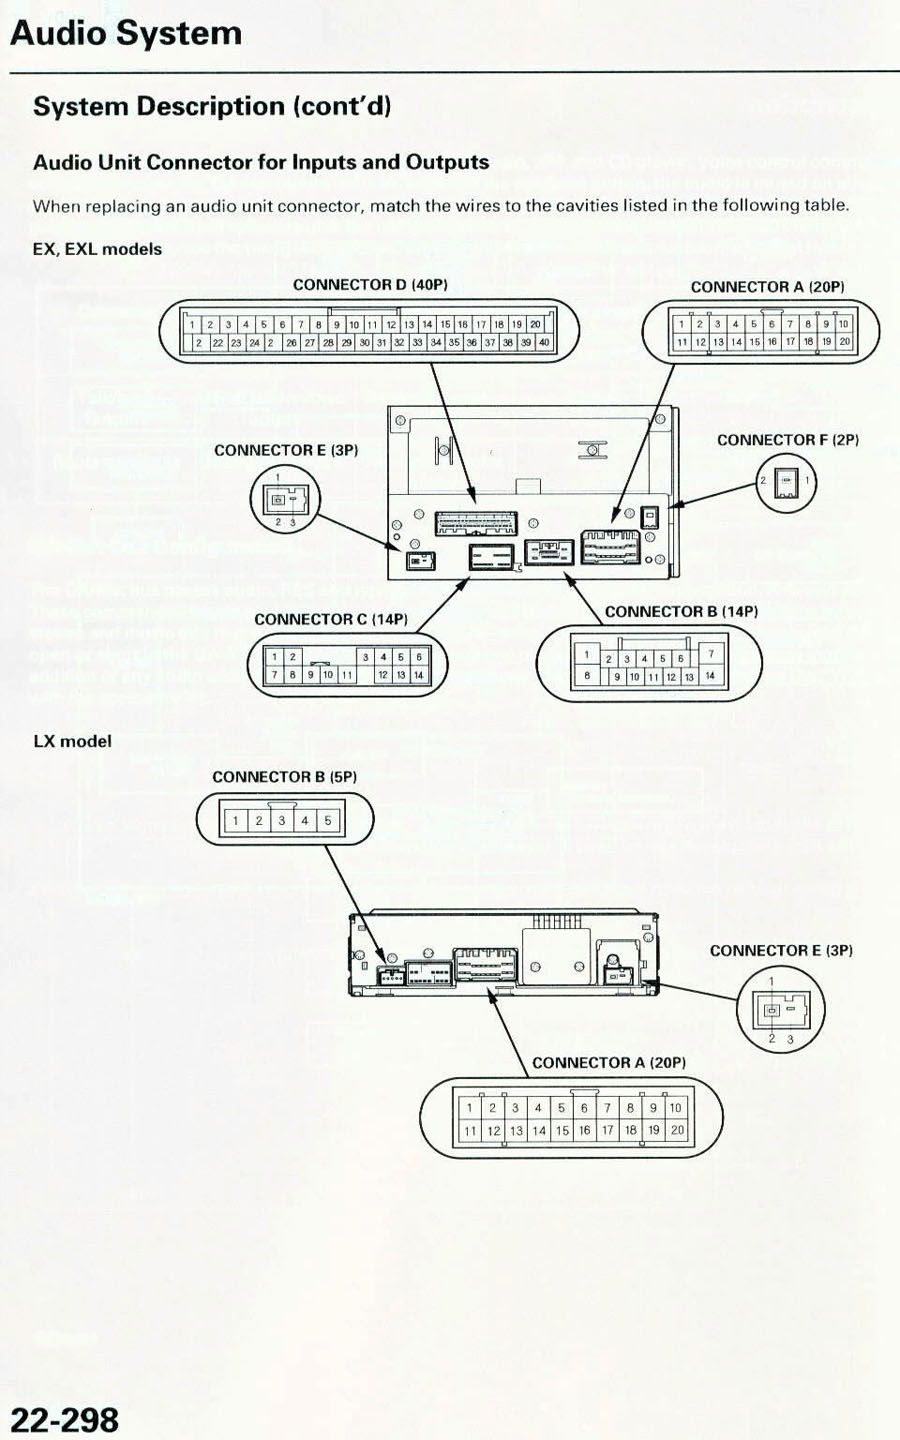 radio plug wiring diagram animal cell and labels 07 civic harness 2006 honda ridgeline best library